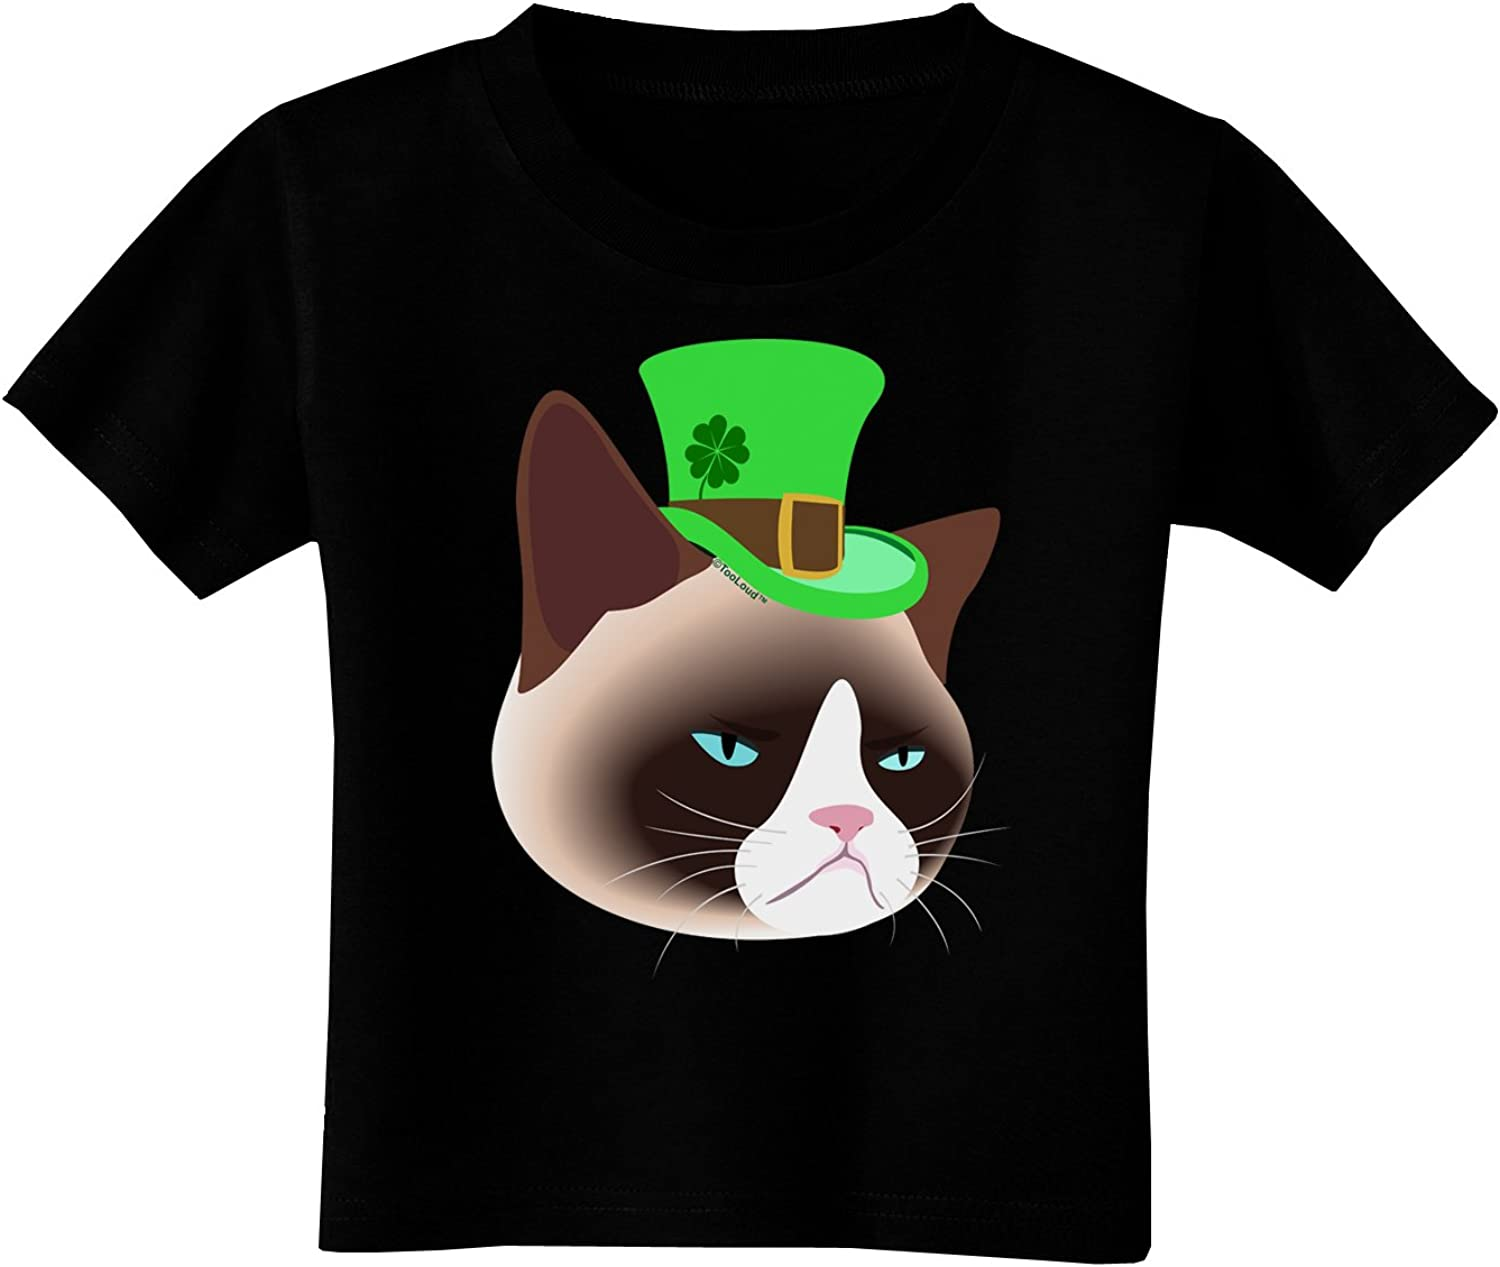 TOOLOUD Leprechaun Disgruntled Cat Toddler T-Shirt Dark